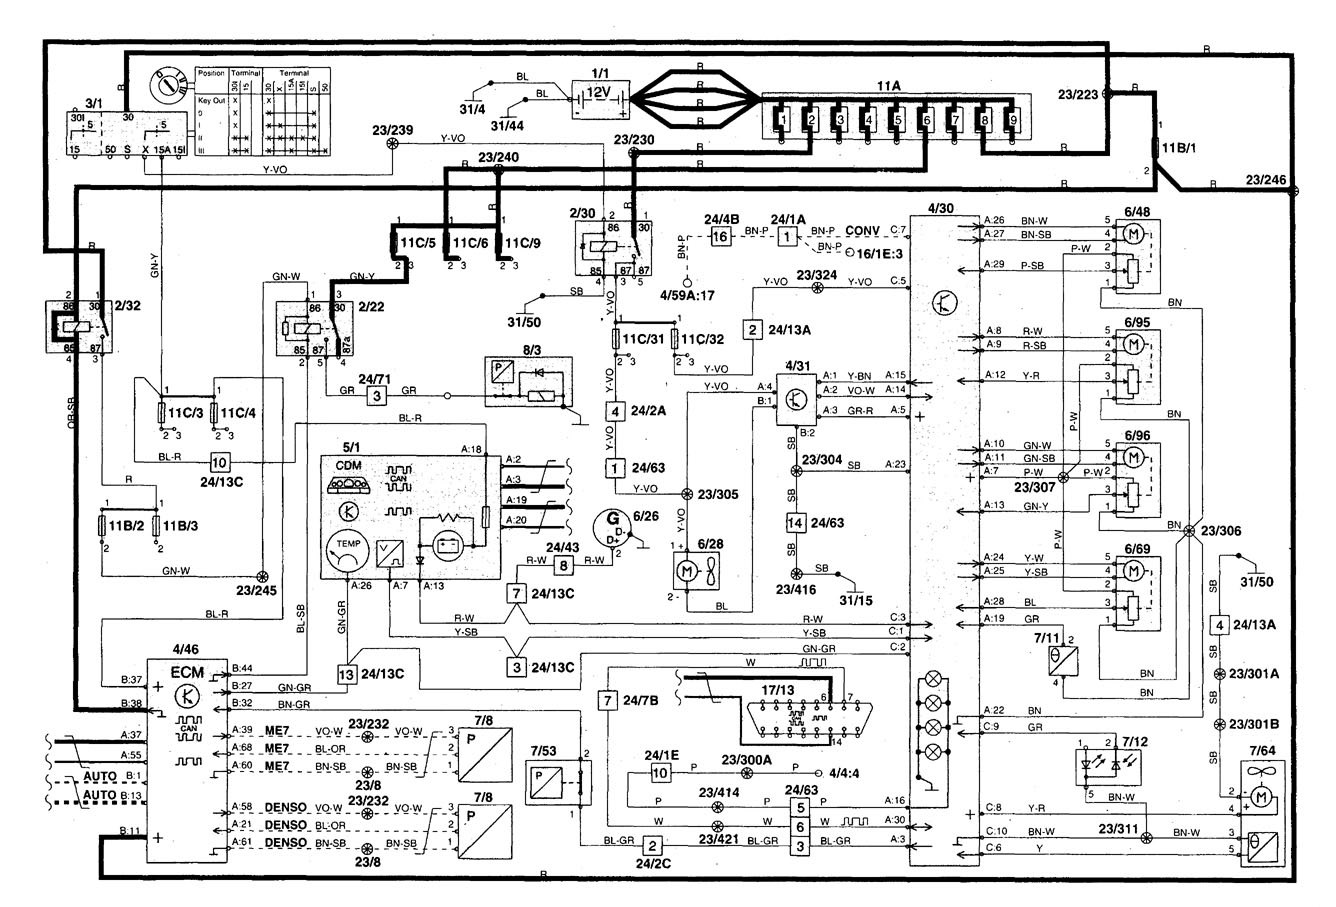 [SCHEMATICS_48DE]  Volvo S70 (1998 - 2000) - wiring diagrams - HVAC controls -  Carknowledge.info | 1998 Volvo S70 Wiring Diagram Component Identification |  | Carknowledge.info